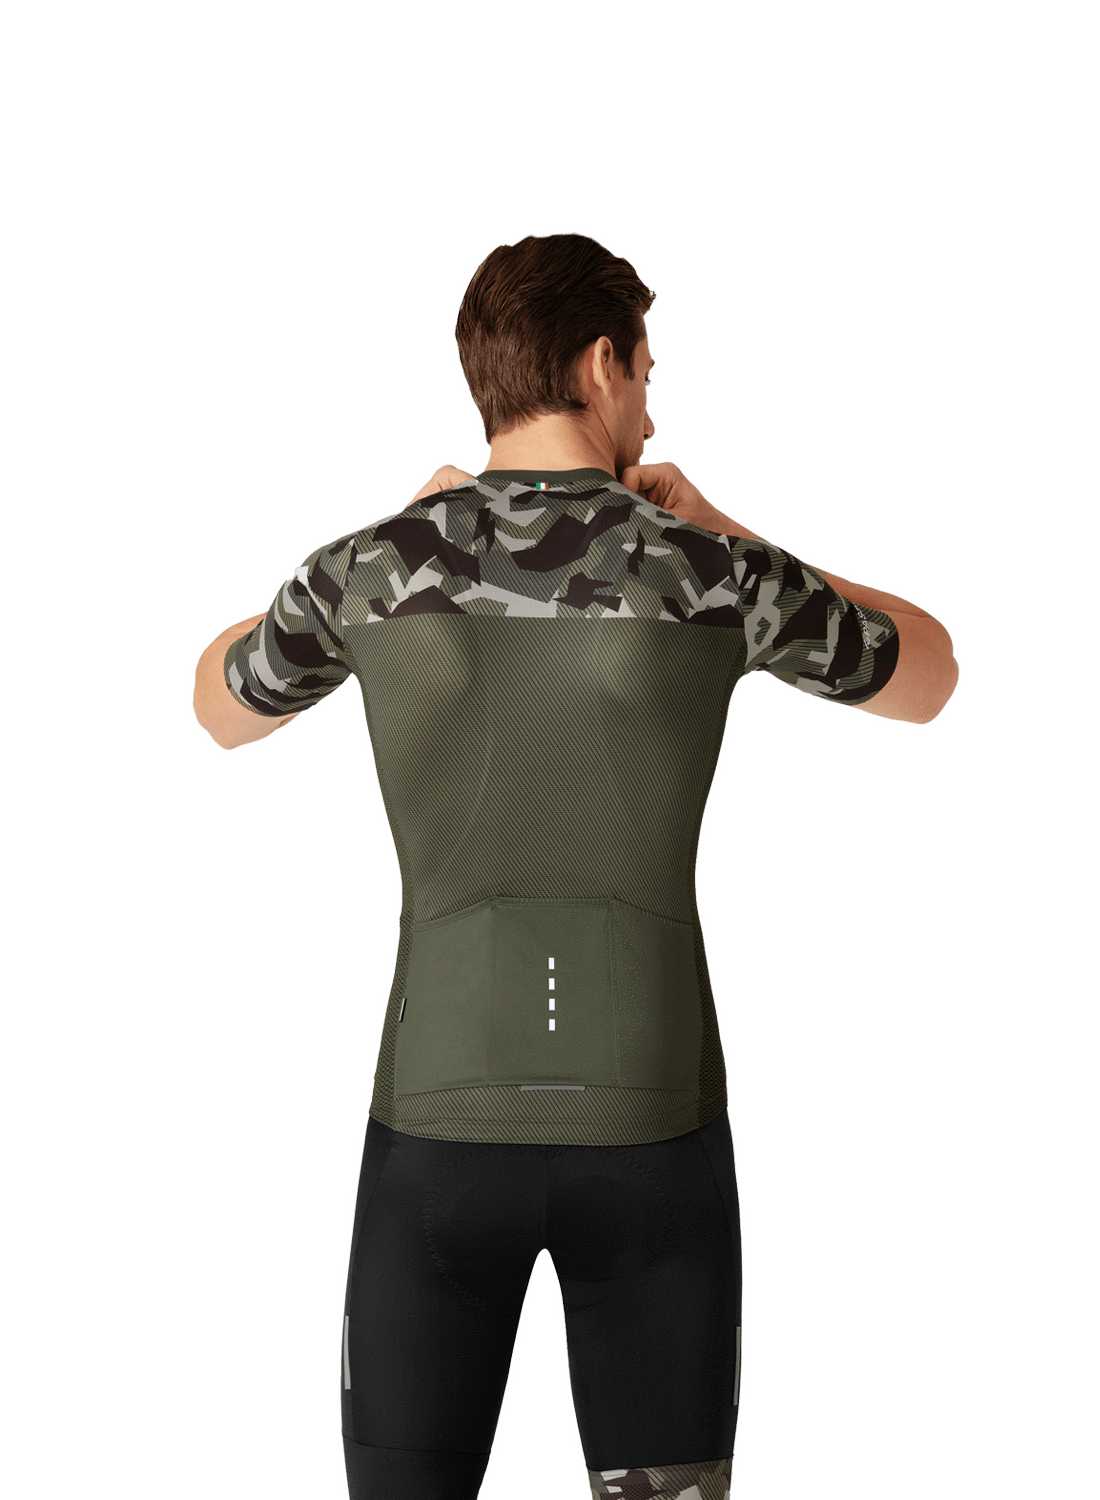 Mimesis Collection La Passione Cycling Couture Uk In 2020 Bike Jersey Design Cycling Design Cycling Jersey Design